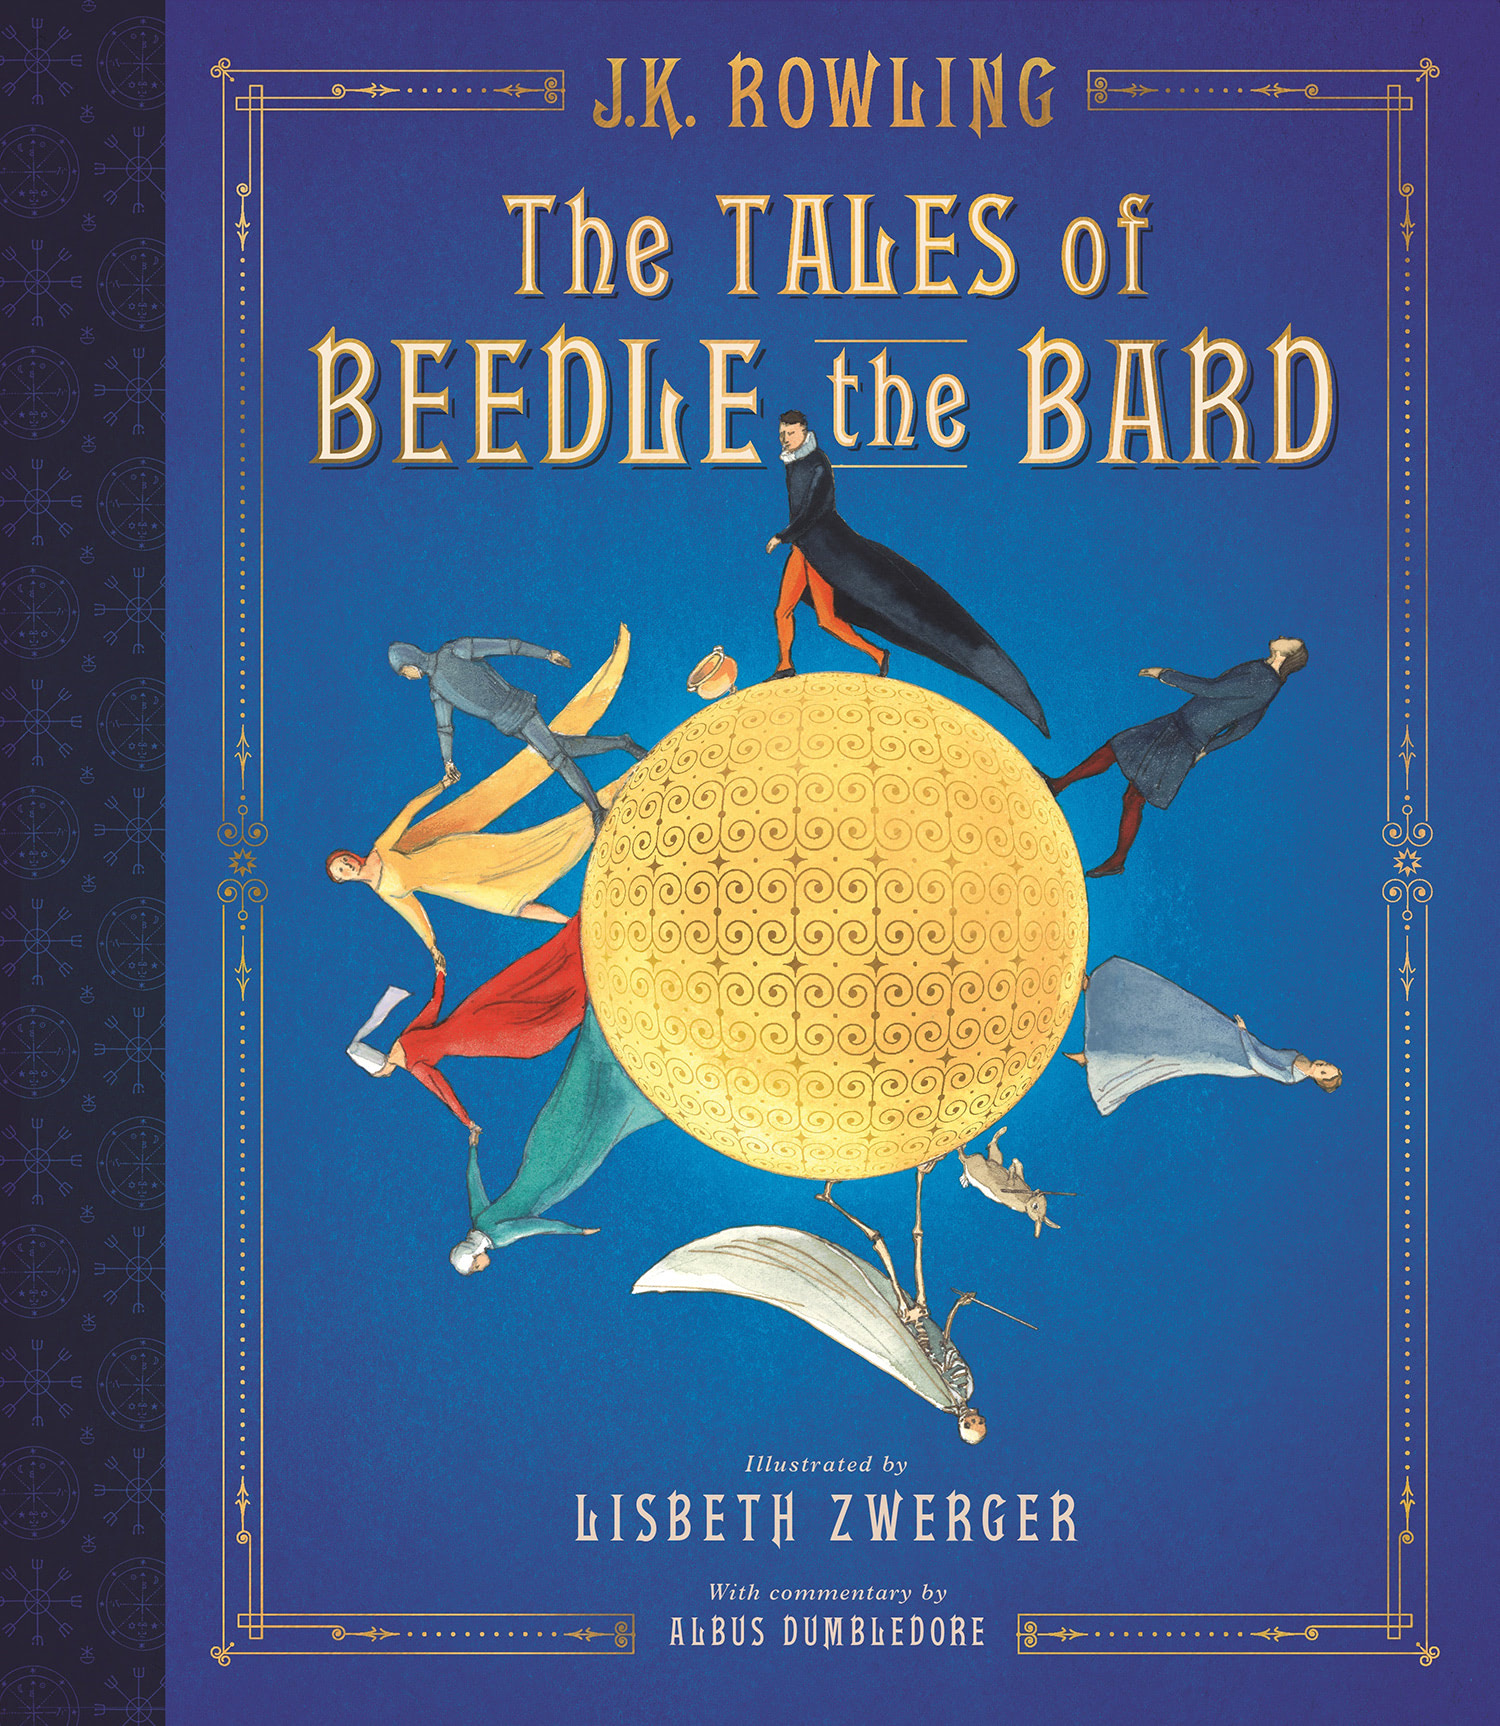 'Beedle the Bard' illustrated edition (Lisbeth Zwerger cover)